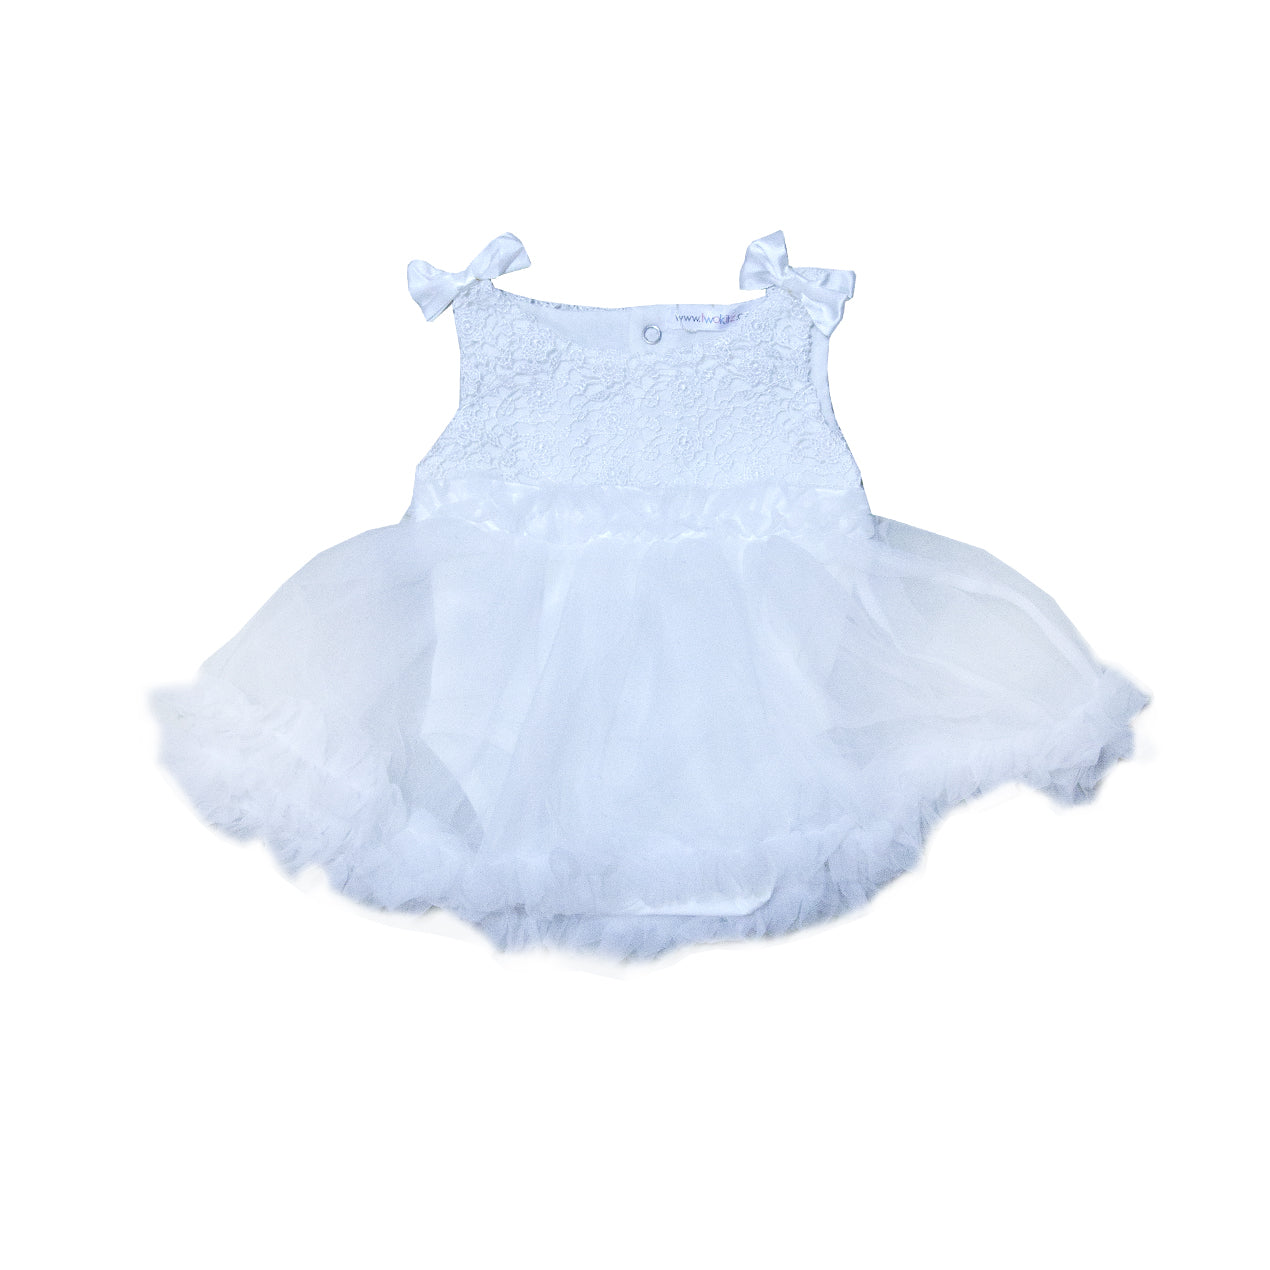 Aurora White Lace Fluffy Romper